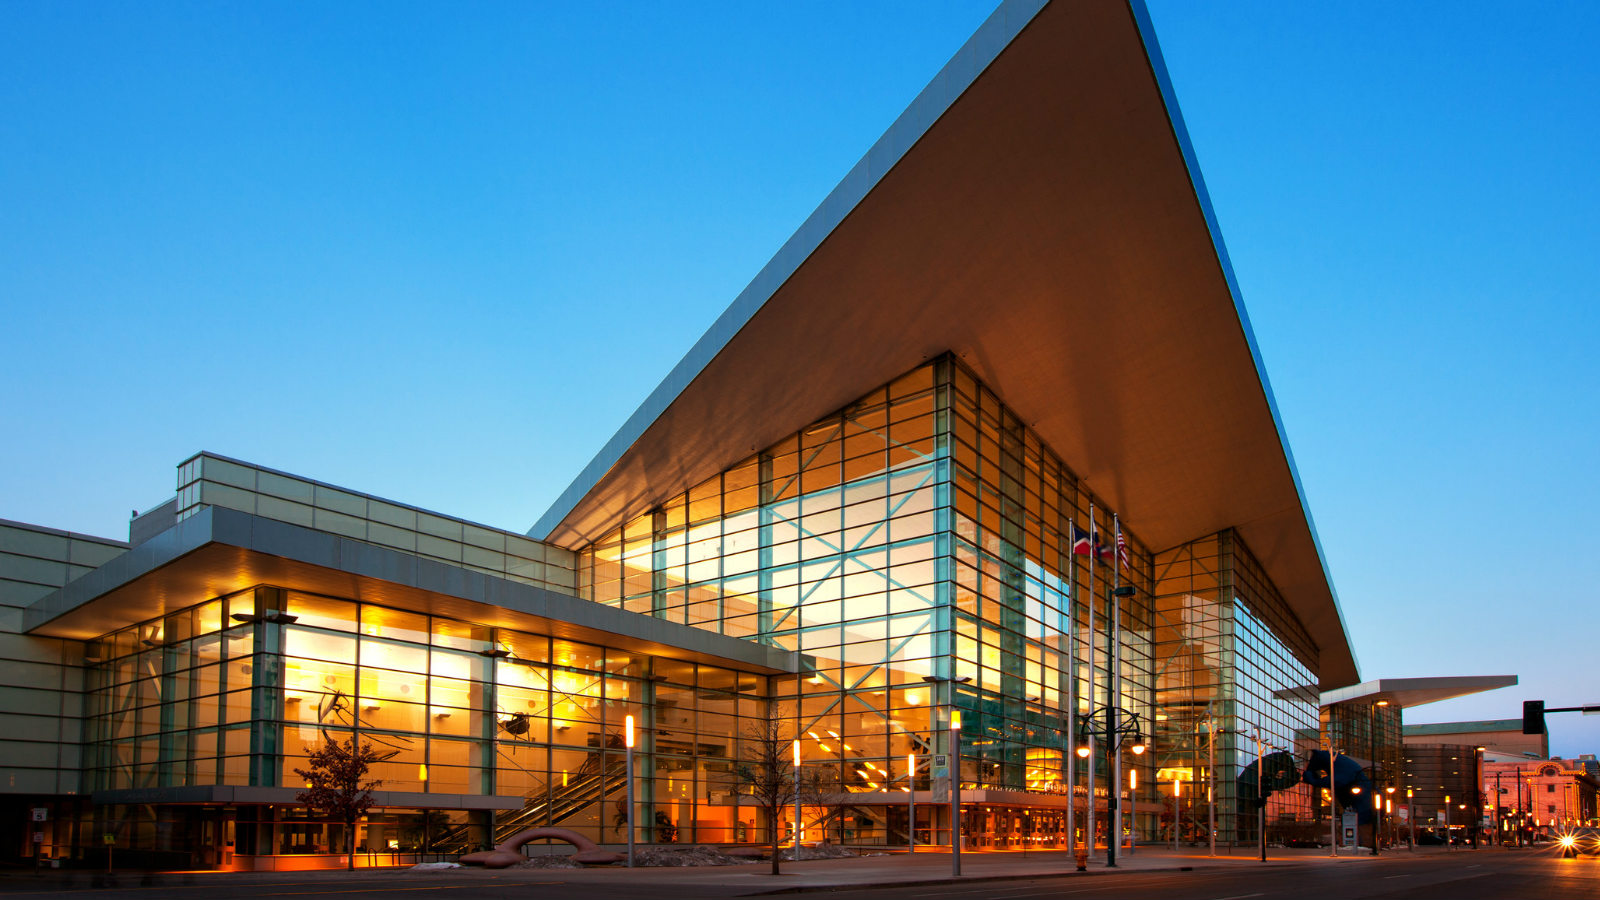 Colorado Convention Center